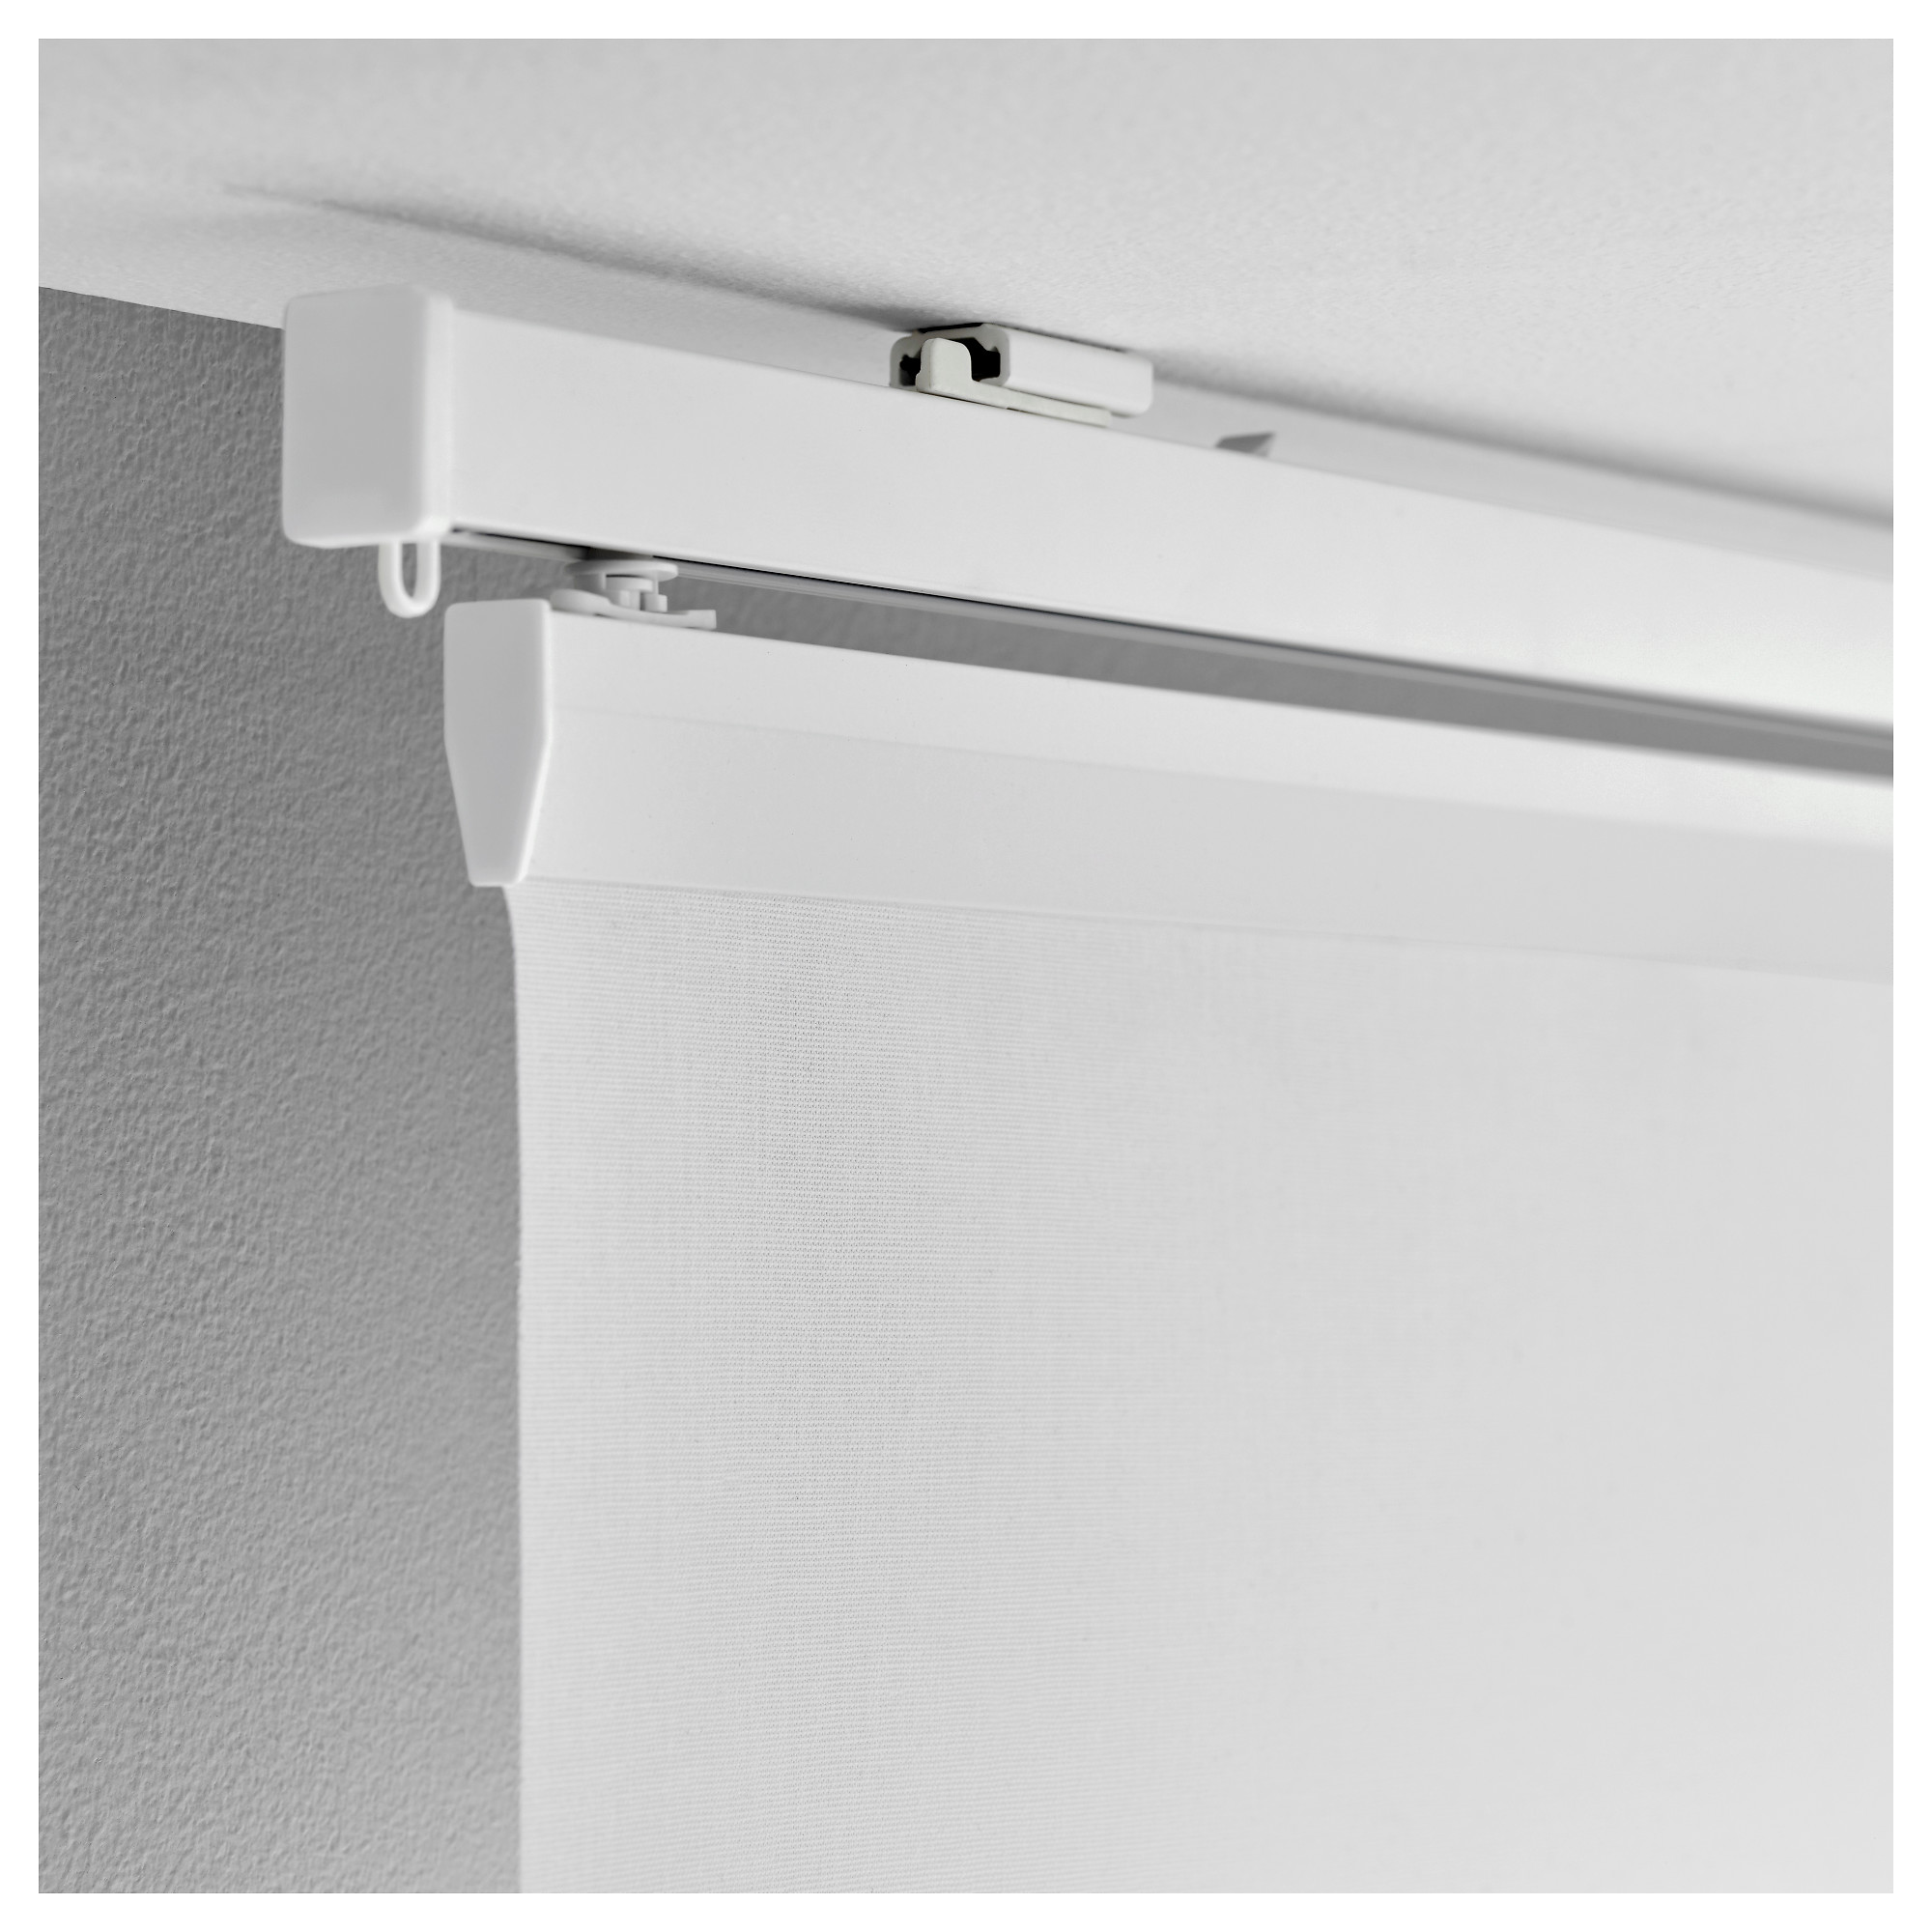 VIDGA Ceiling Bracket - White